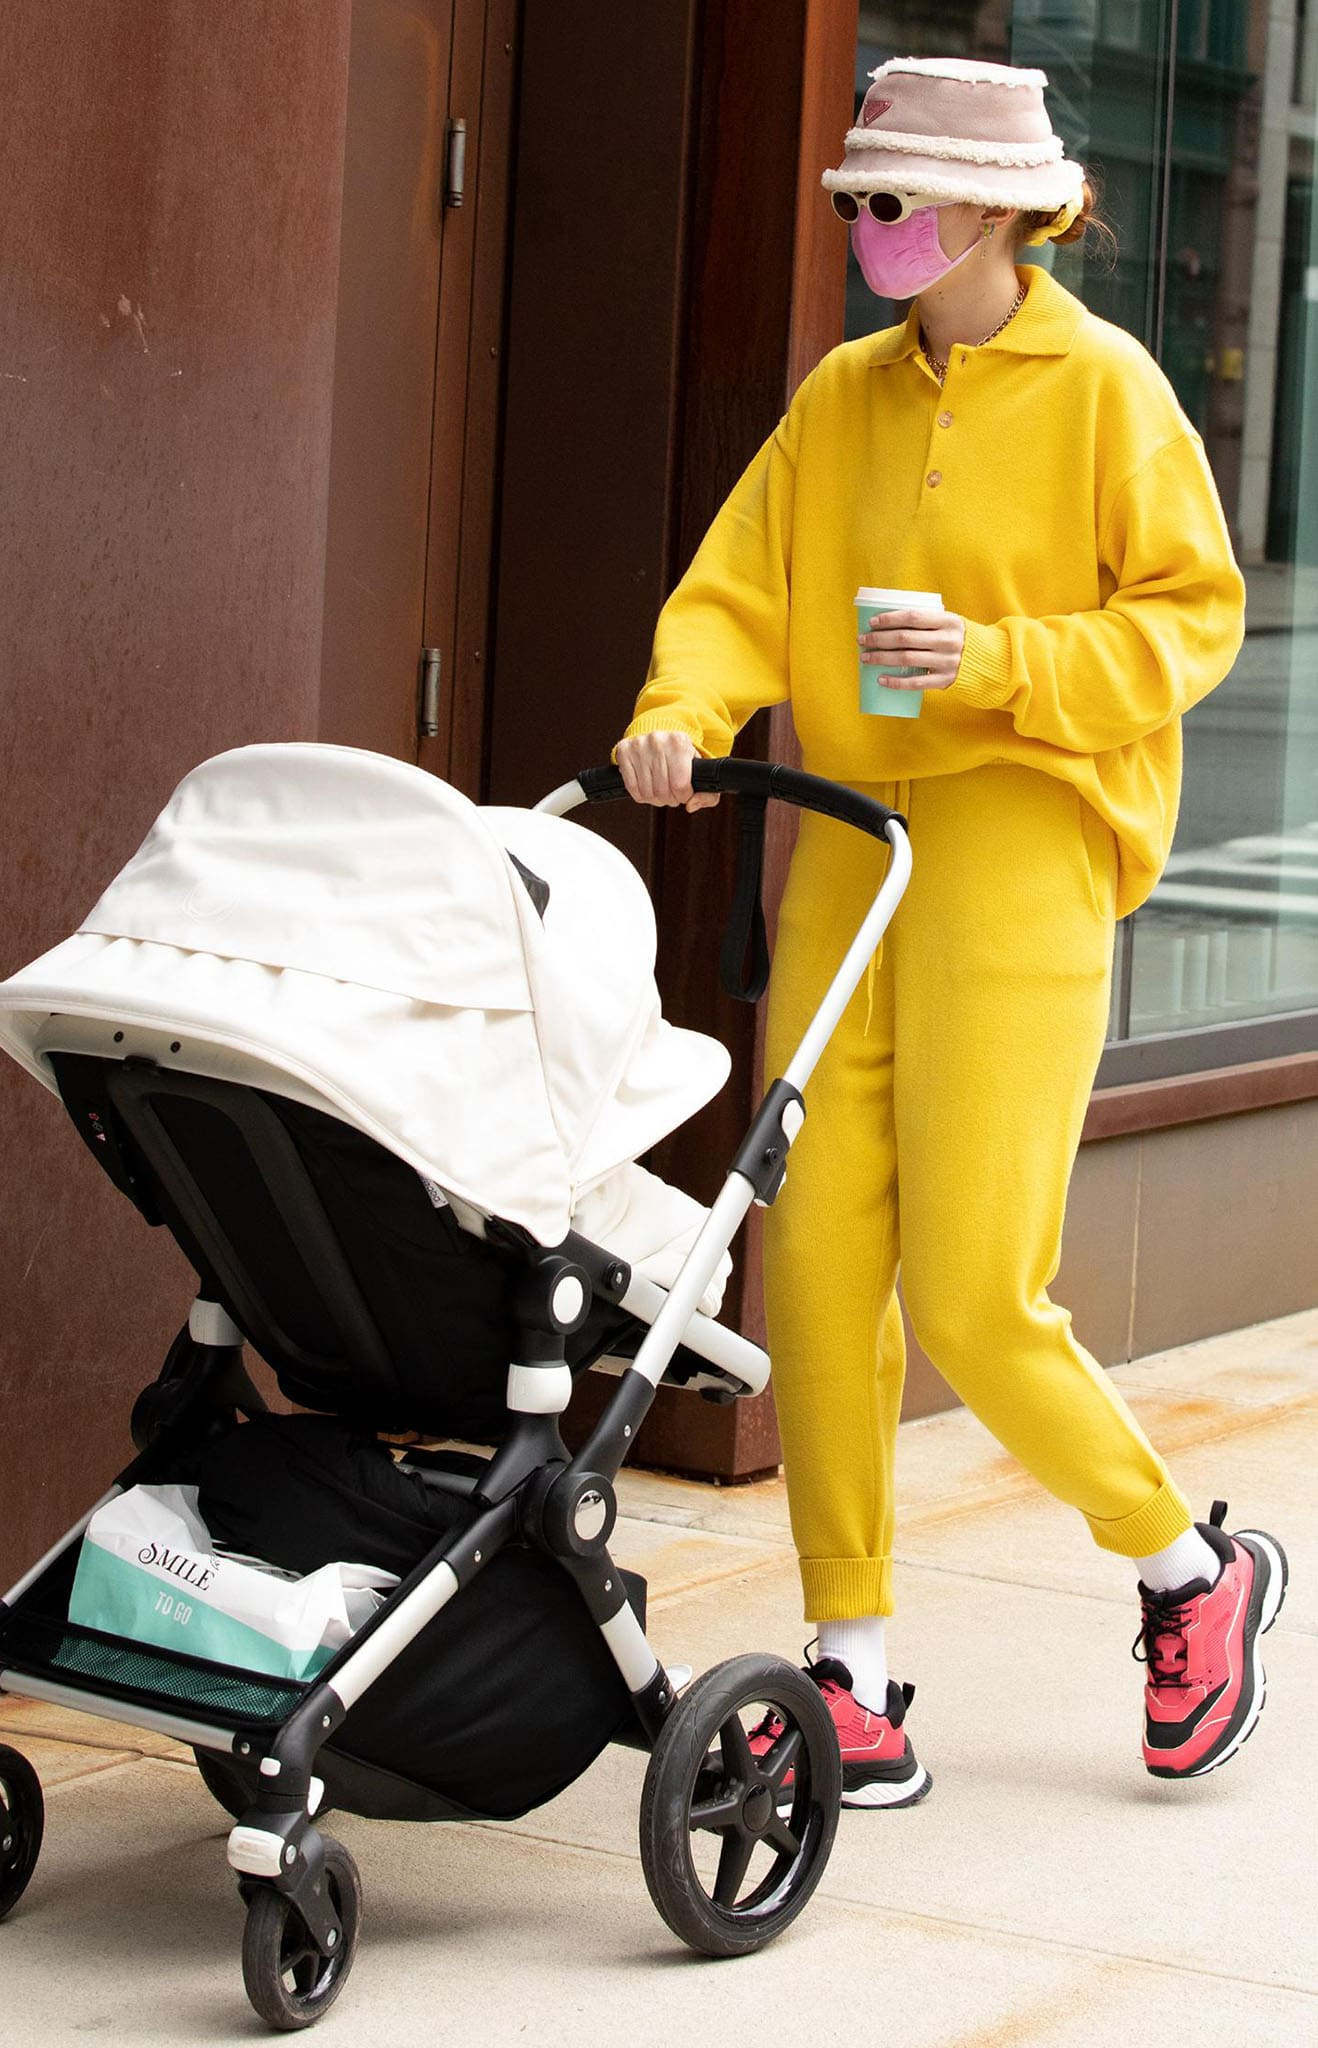 Gigi Hadid is ray of sunshine in Amiss Conception yellow polo sweater and joggers while out with daughter Khai in New York City on April 1, 2021